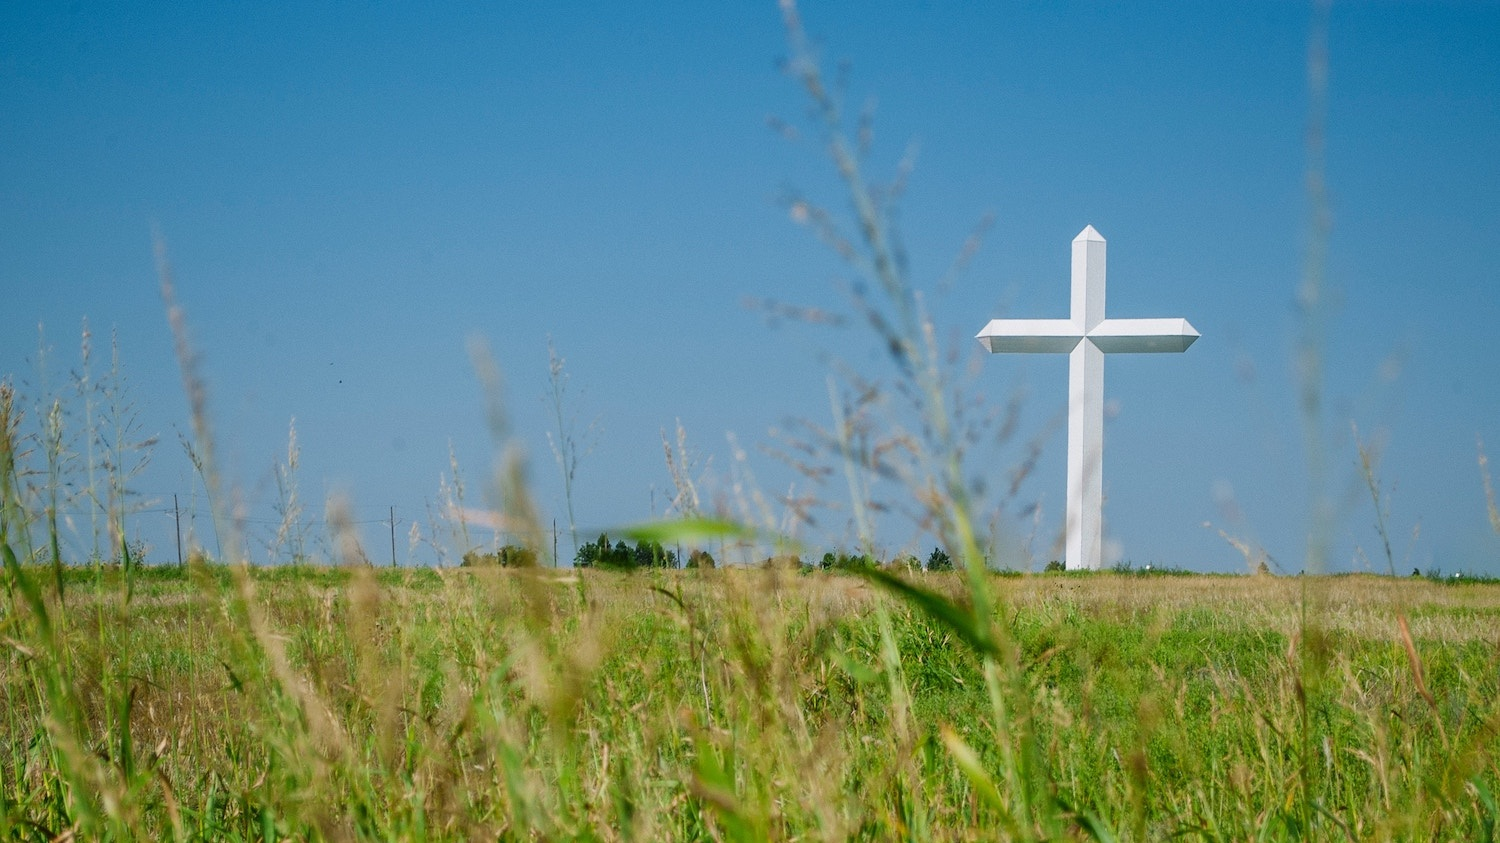 A large white cross against a blue sky in a field